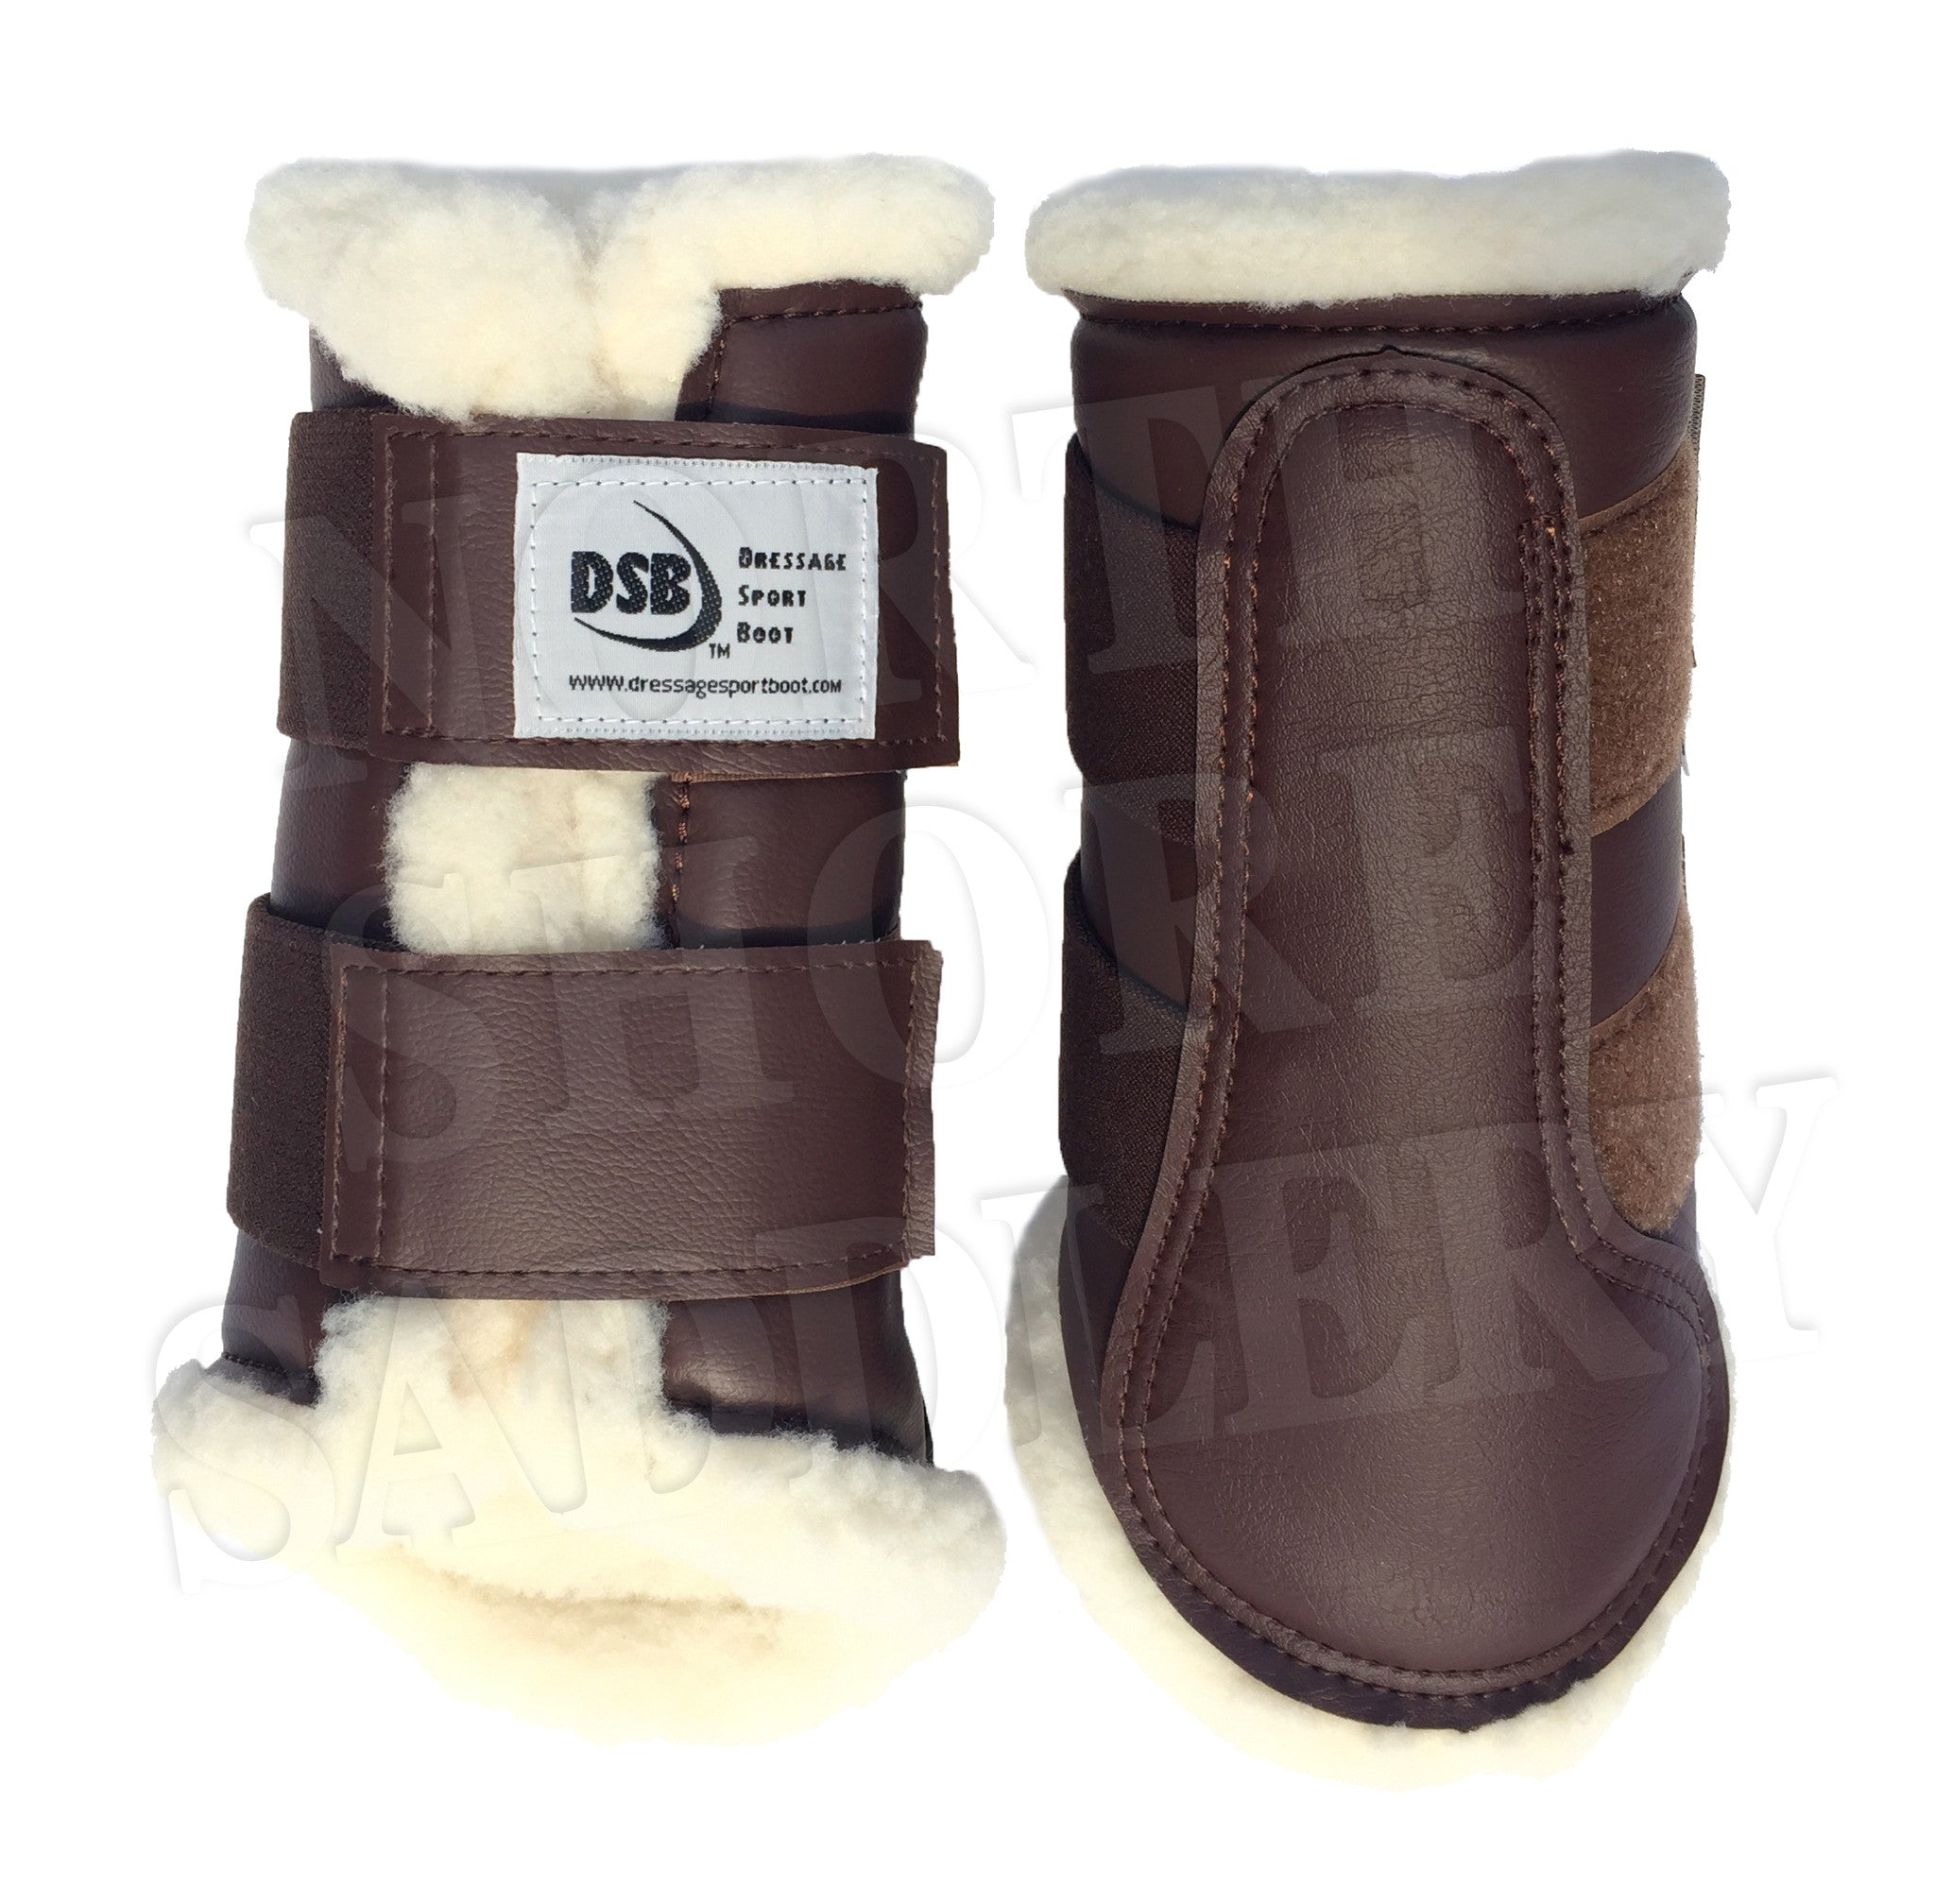 DSB Dressage Sport Boots Original - North Shore Saddlery